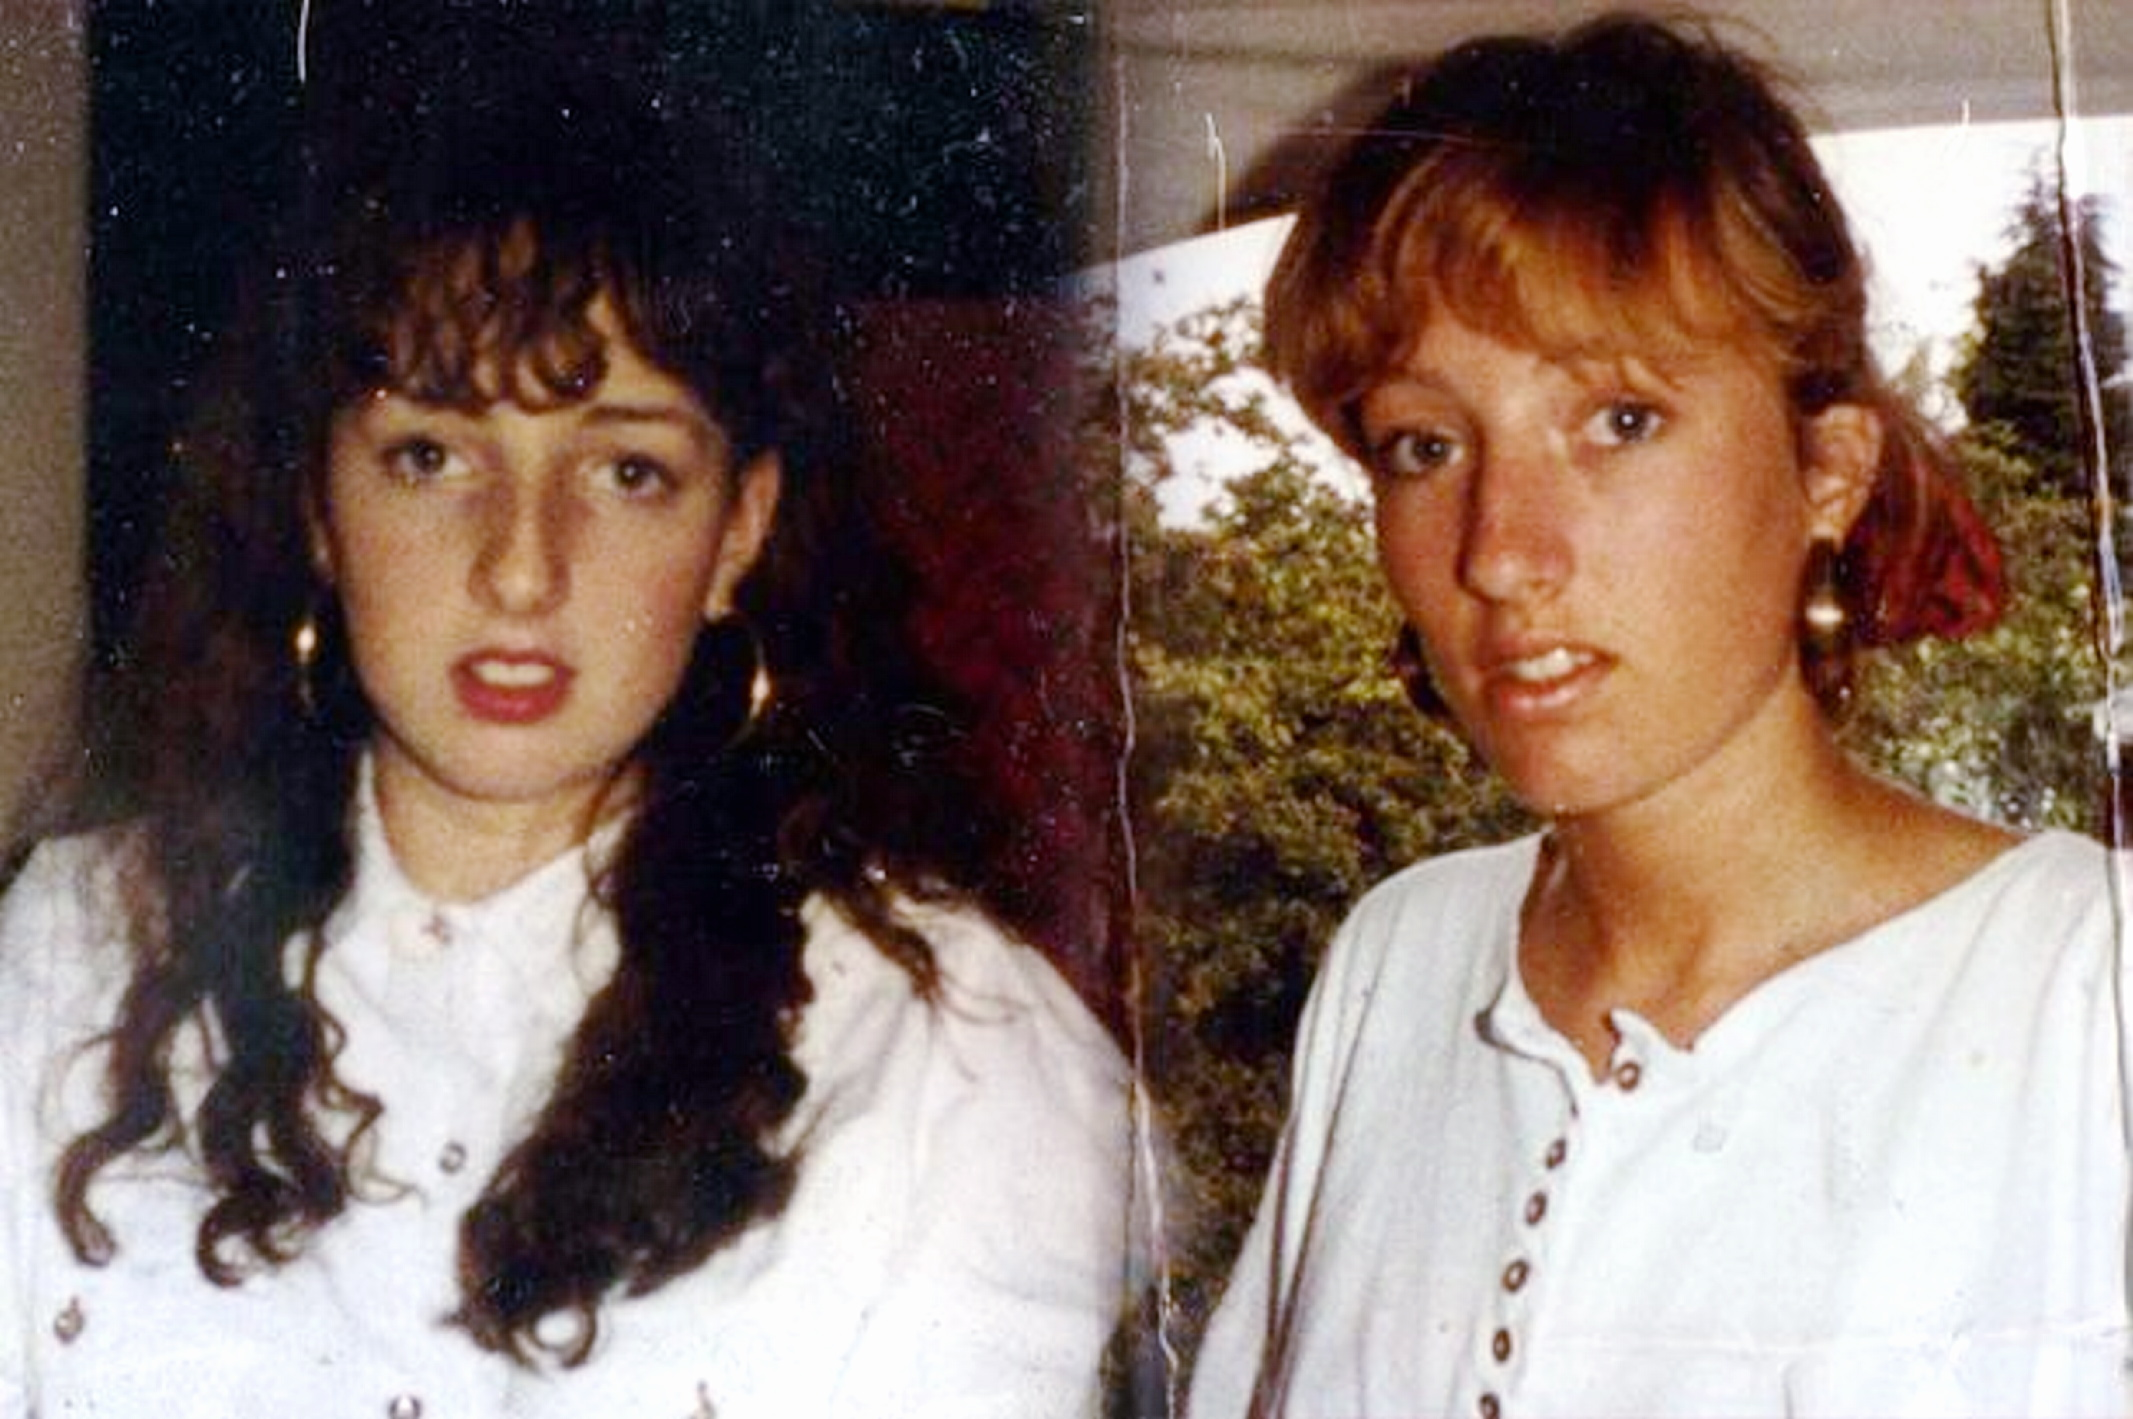 Hillsborough inquest: Parents pay tribute to sisters who 'lived together and died together'